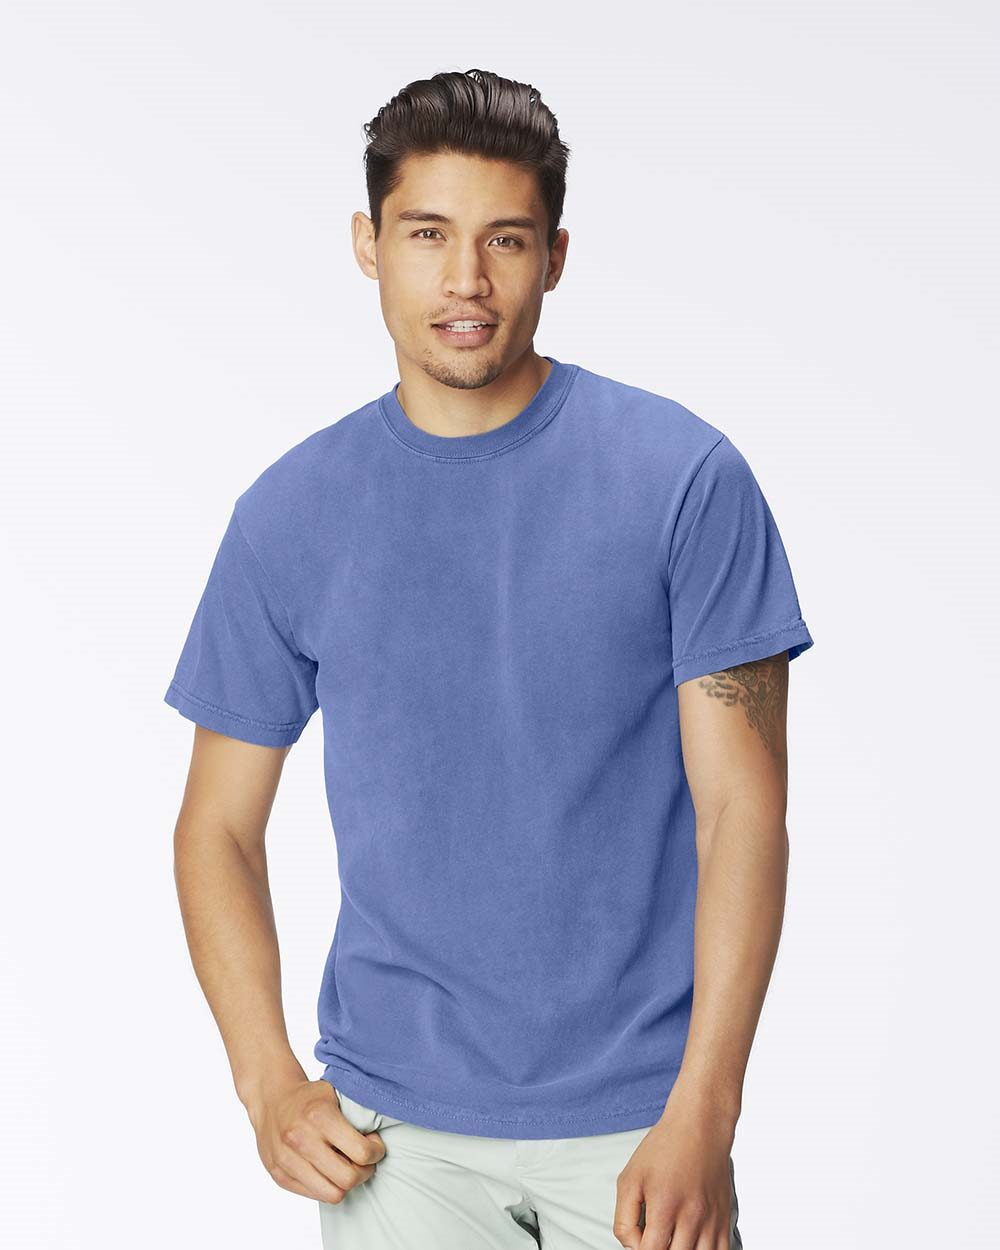 bcacdeaec Comfort Colors Drop Ship - C9030 Garment-Dyed T-Shirt $4.67 - Men's ...